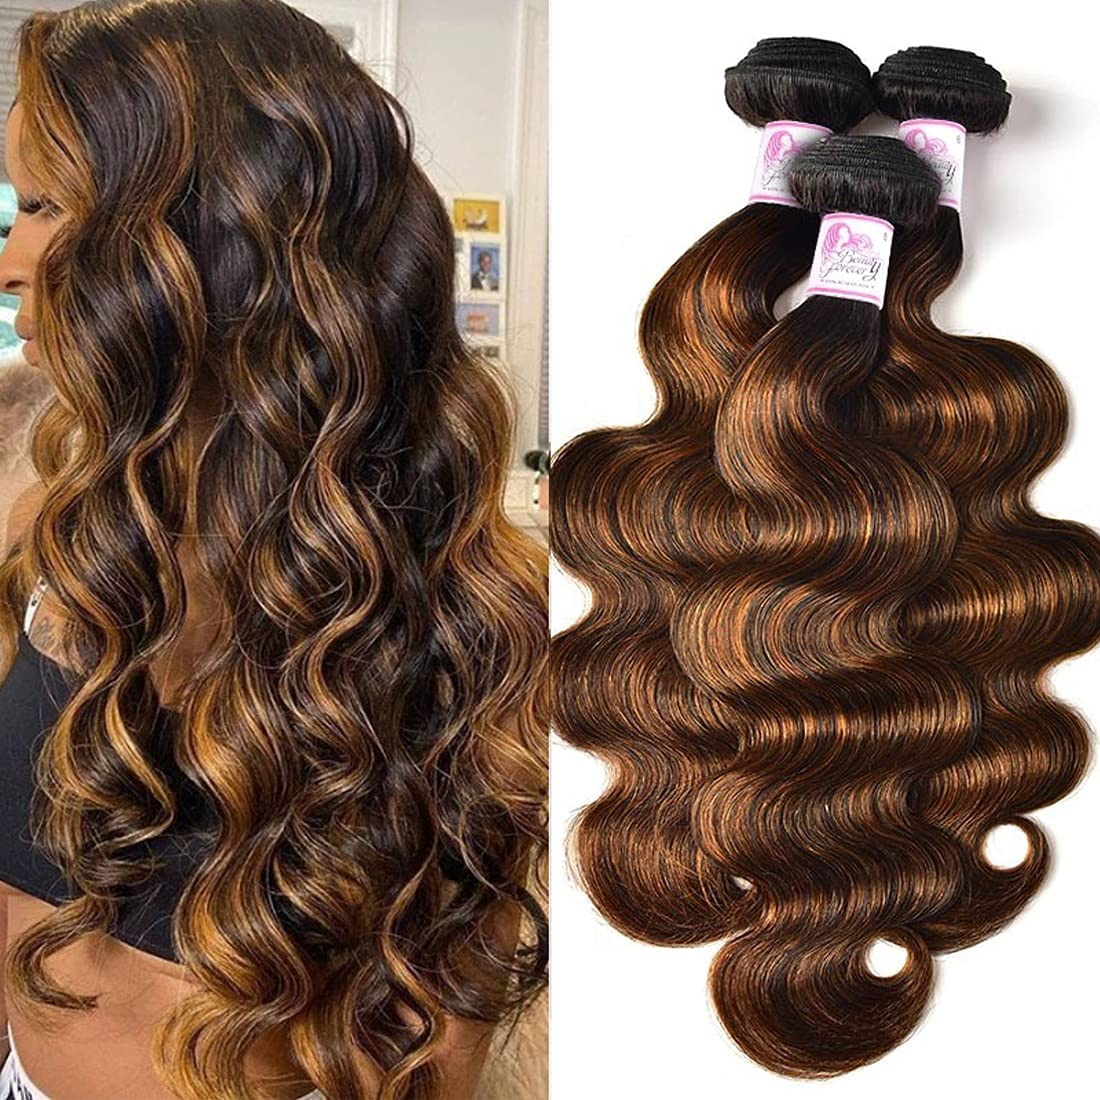 Beauty Forever Ombre Highlight Brazilian Body Wave 3 Hair Outlet sale feature Indefinitely Virgin